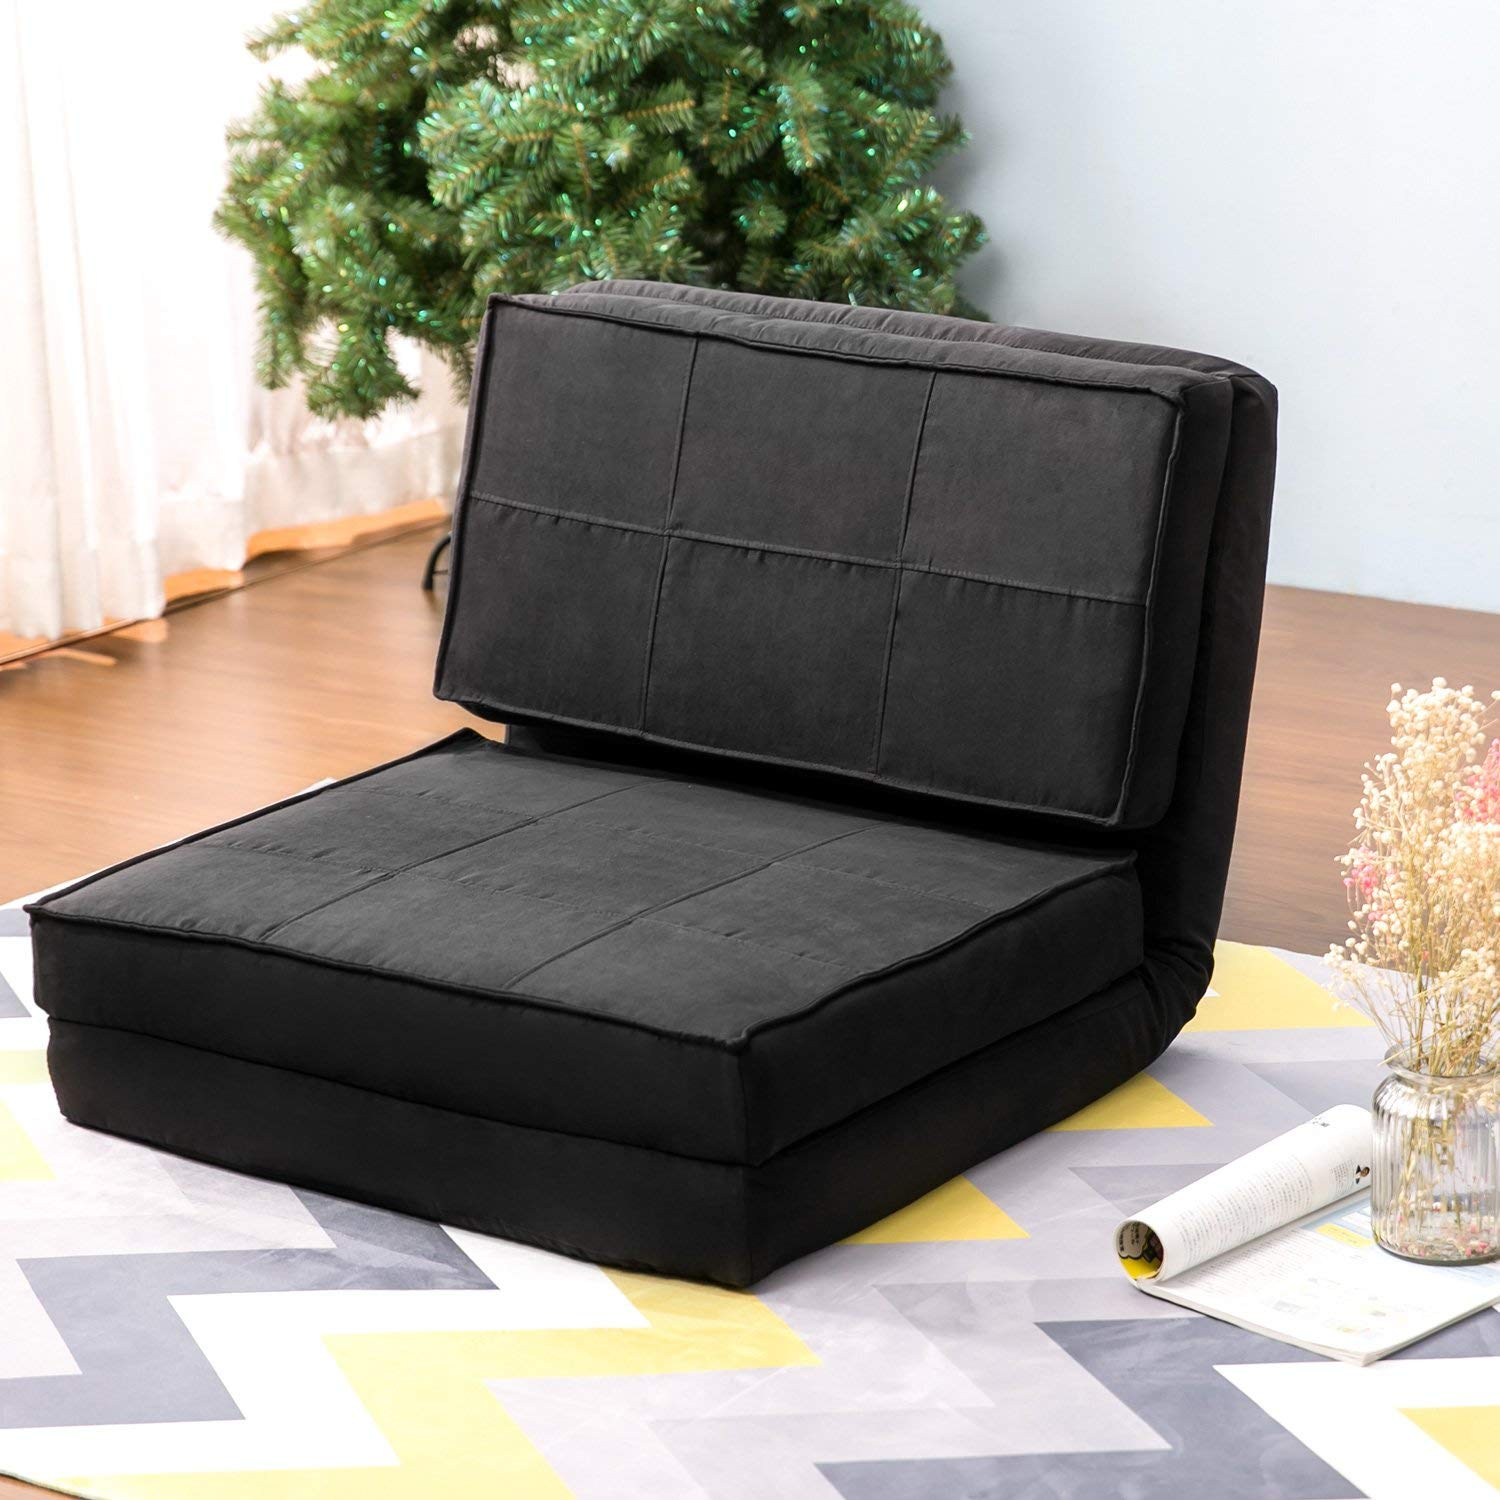 fufsack sofa sleeper lounge chair small room ideas cheap black find deals on line at get quotations harper bright designs convertible futon flip bed couch seating lounger